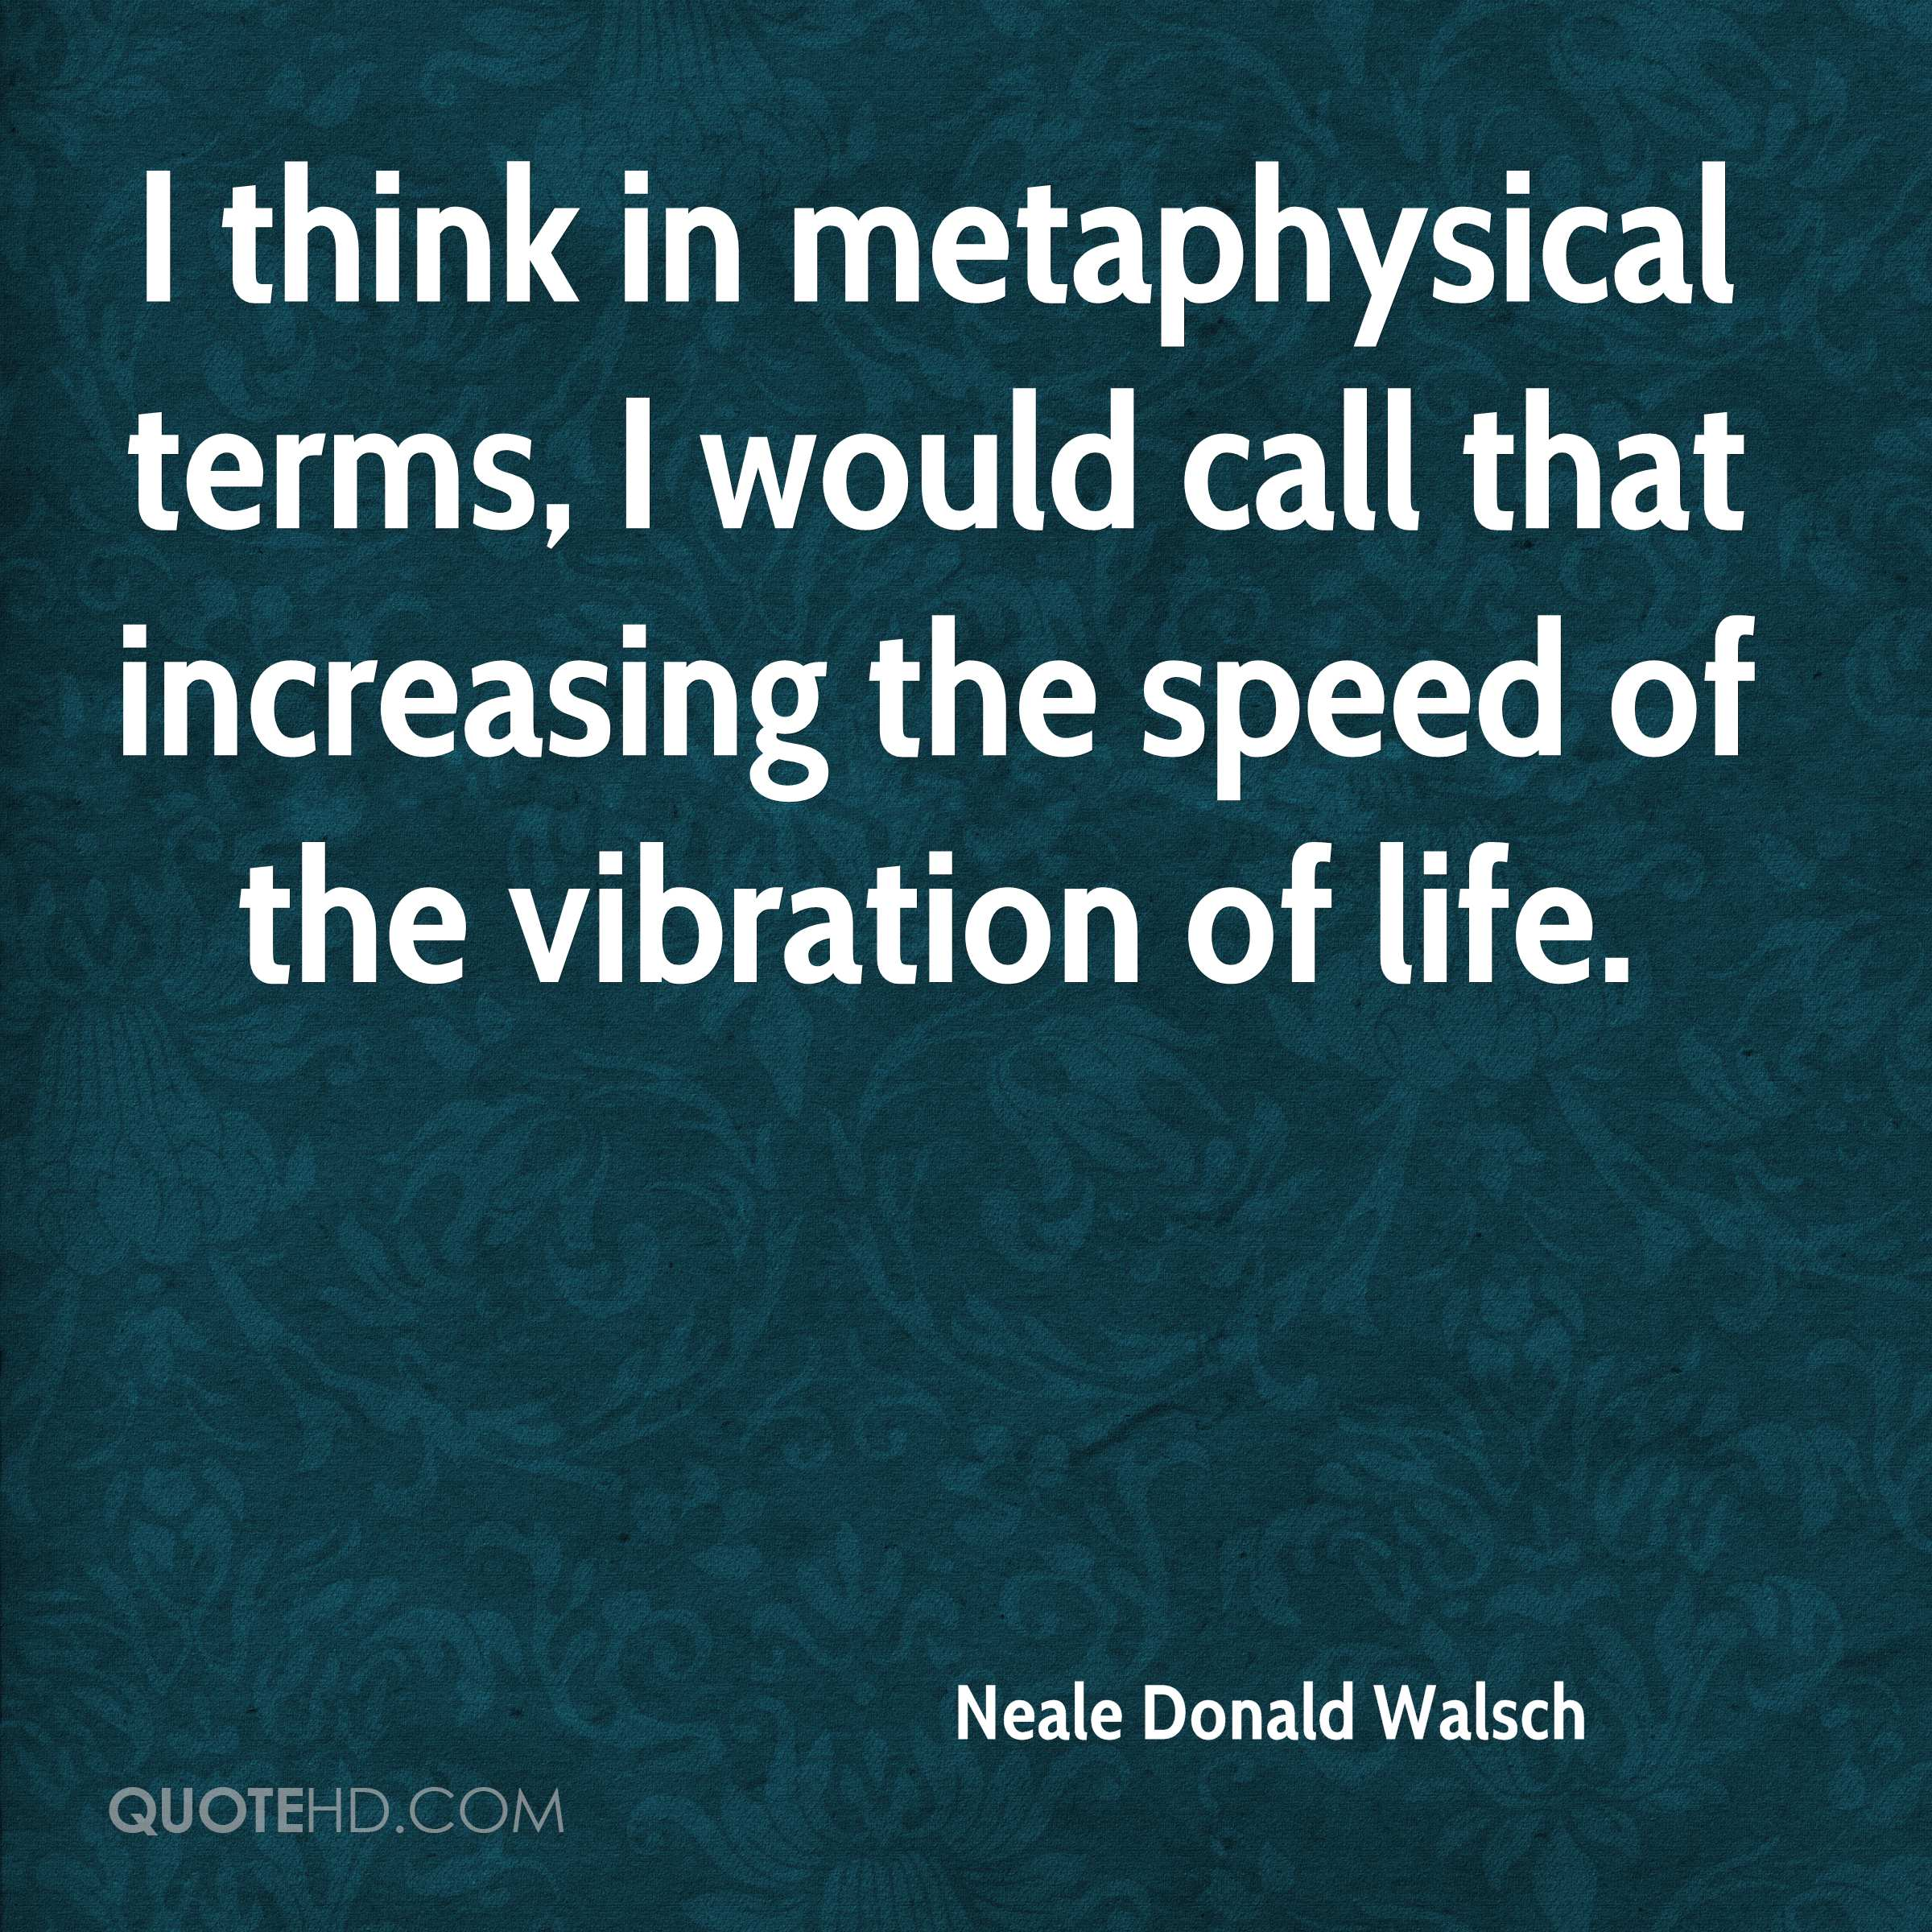 I think in metaphysical terms, I would call that increasing the speed of the vibration of life.